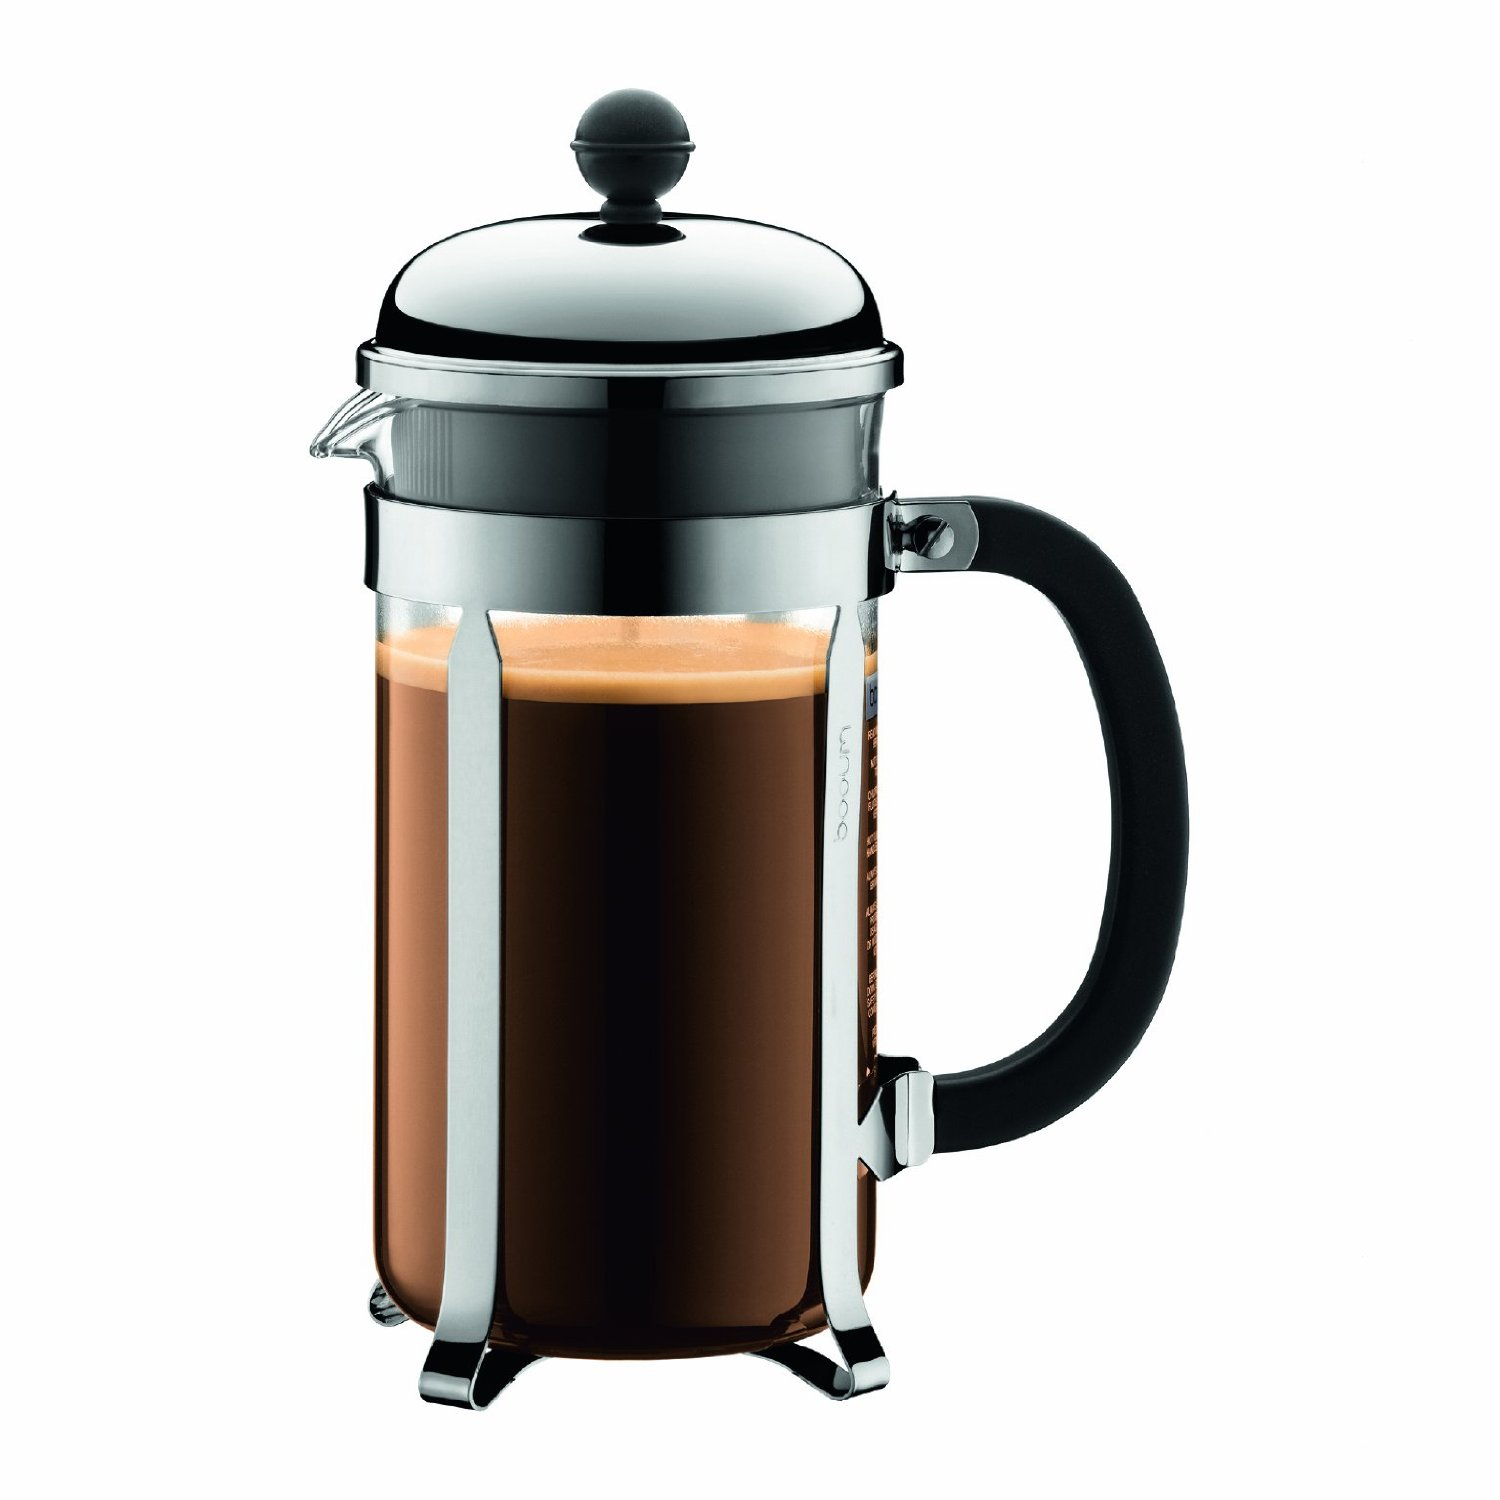 Bodum Chambord French Press Comparision